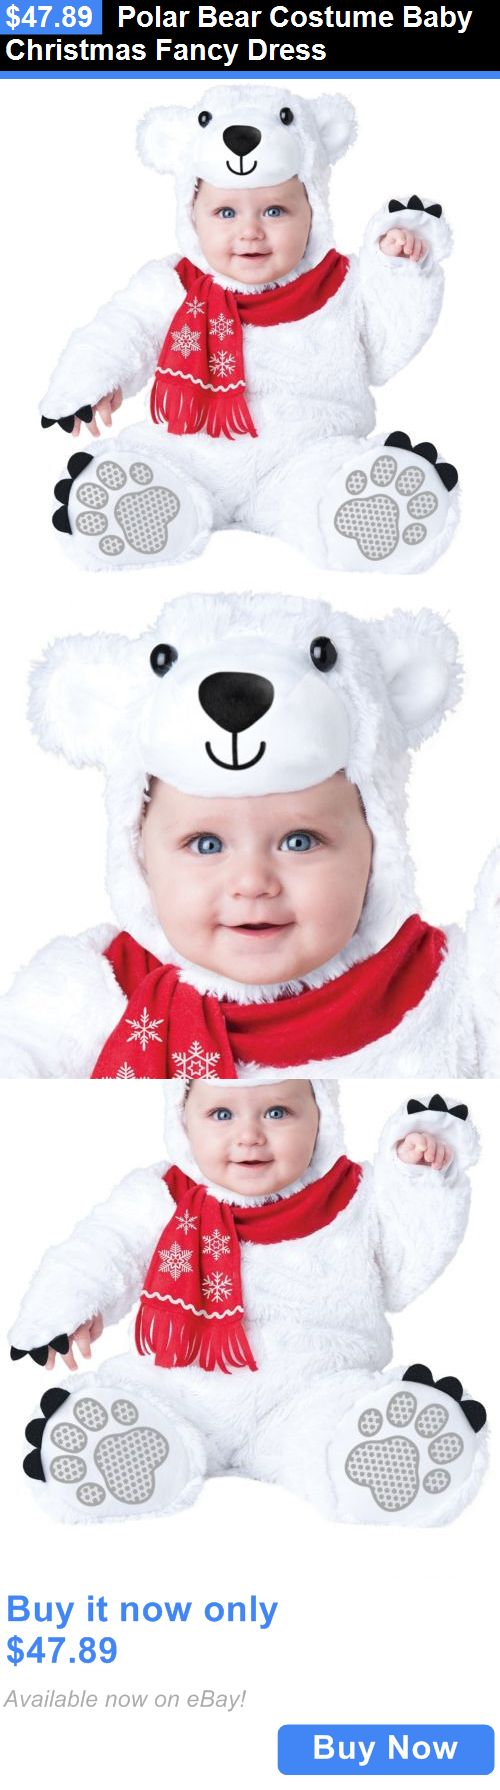 Kids Costumes: Polar Bear Costume Baby Christmas Fancy Dress BUY IT NOW ONLY: $47.89